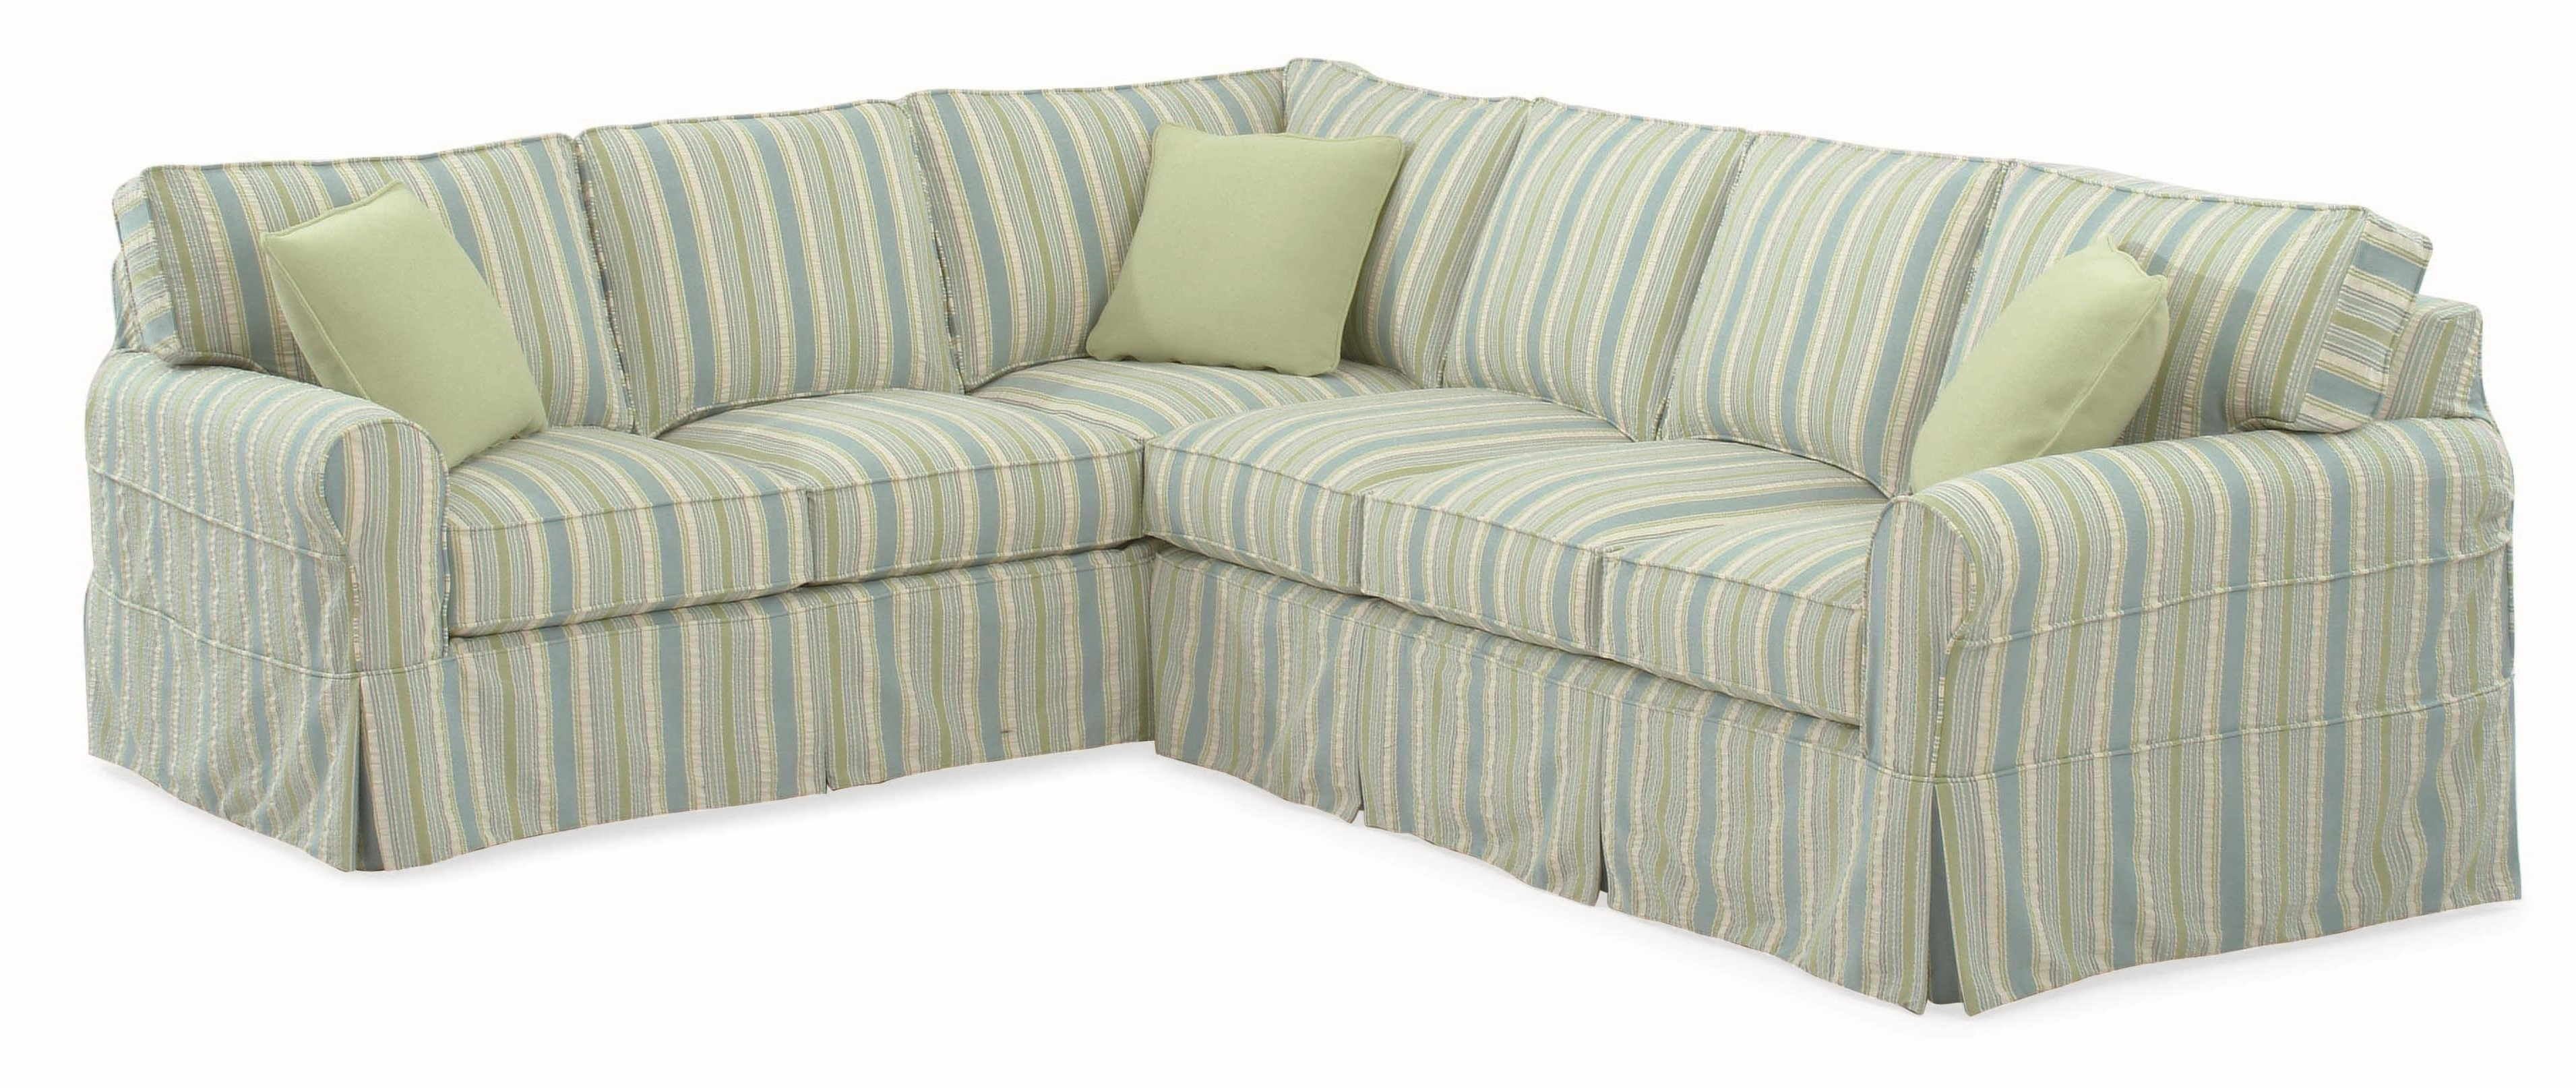 Braxton Culler 728 Casual Sectional Sofa With Rolled Arms And Intended For Most Recently Released Braxton Sofas (View 6 of 15)